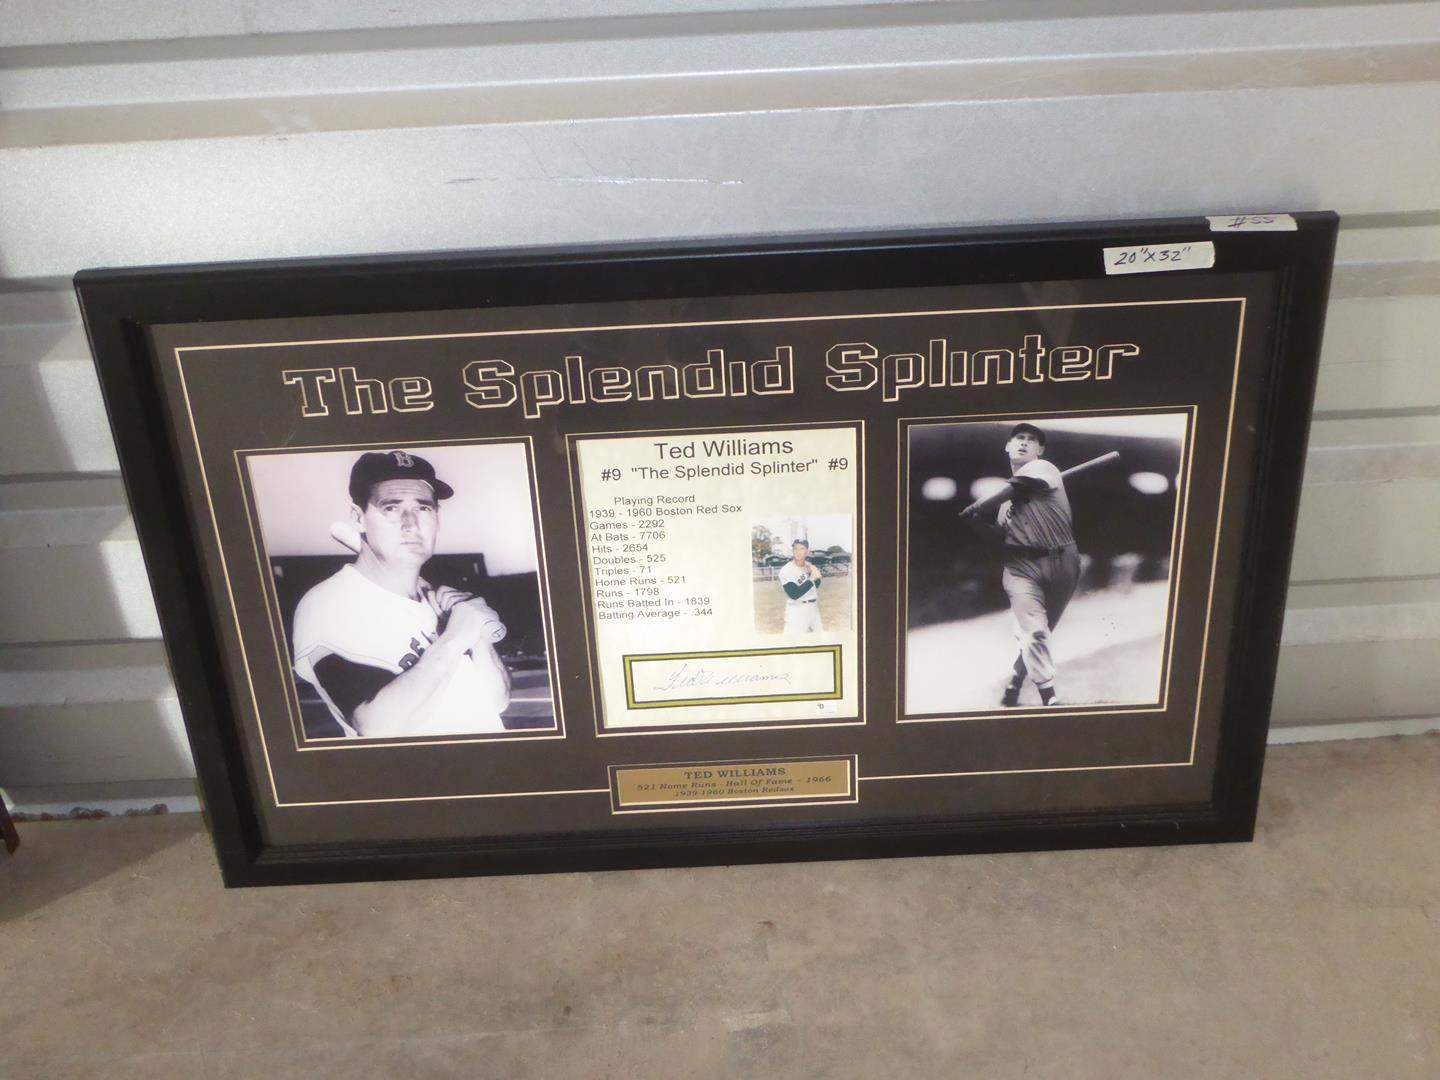 Lot # 55 - Ted Williams 'The Splendid Splinter' Autograph Signed Framed Baseball Photo Print Collage (main image)